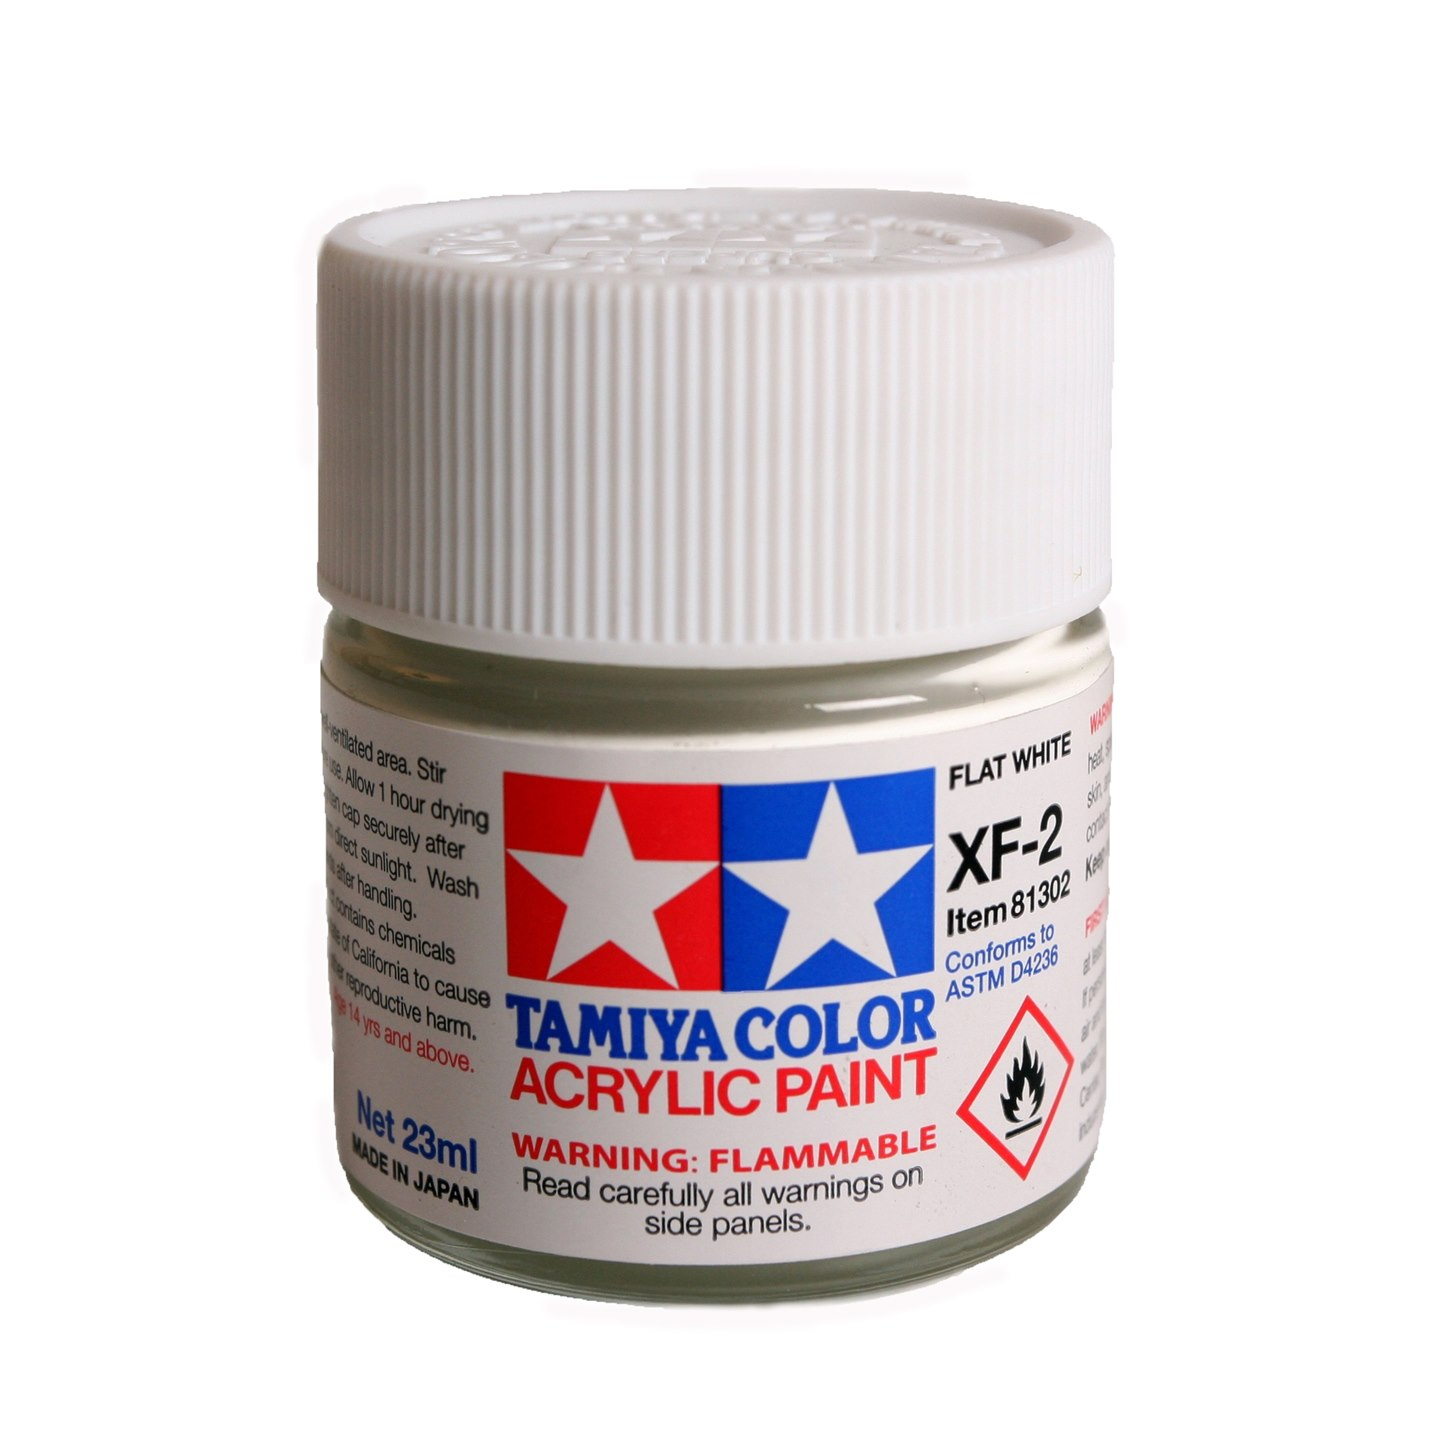 Tamiya Color Acrylic Paint XF-2 Flat White (23ML)